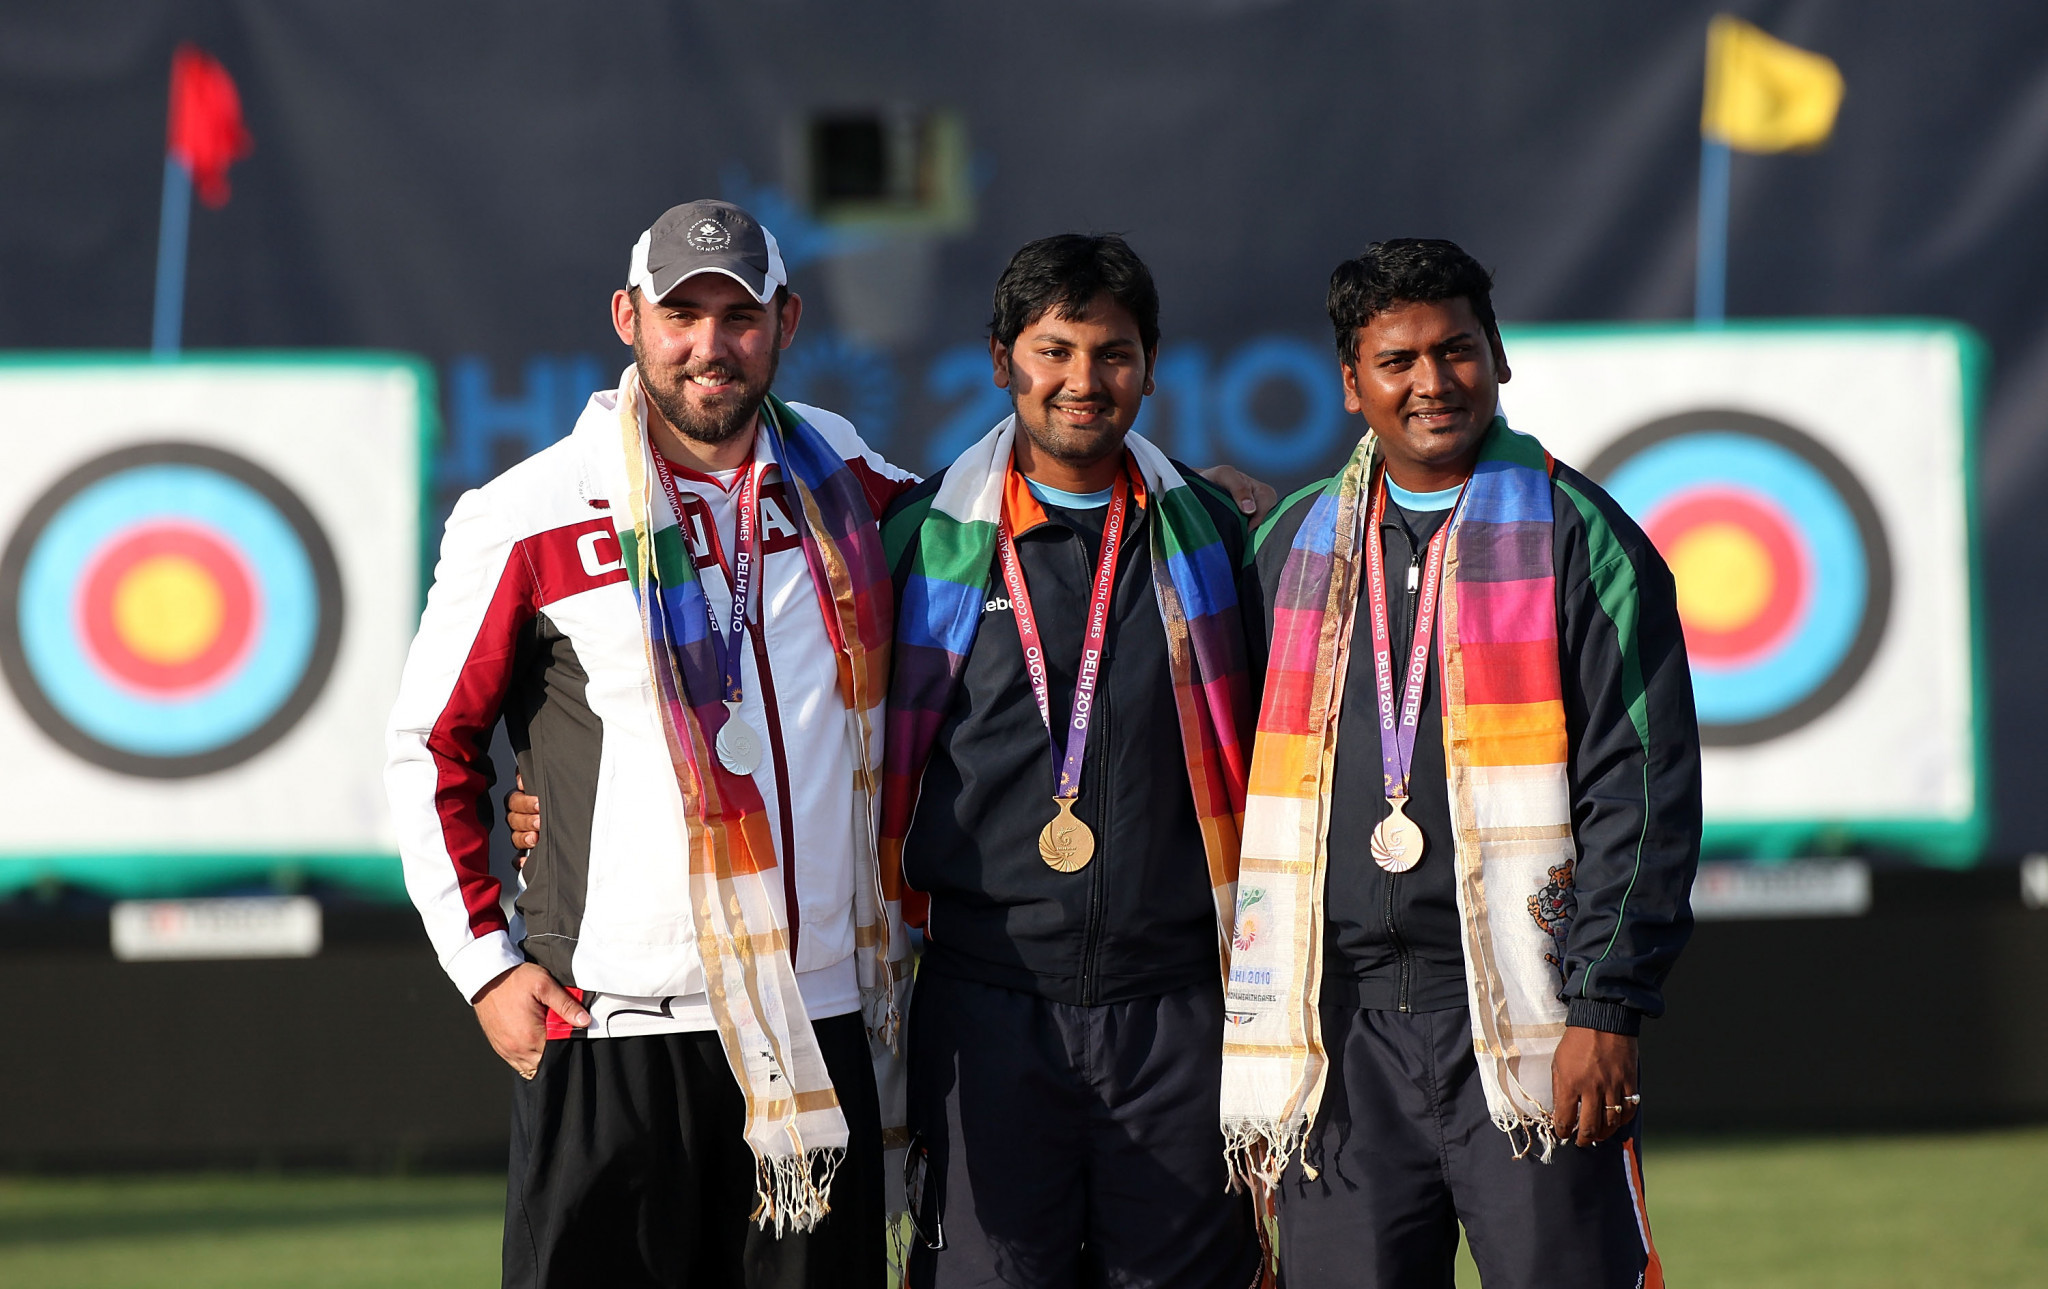 Archery has featured at the Commonwealth Games twice before, most recently at Delhi 2010 ©Getty Images